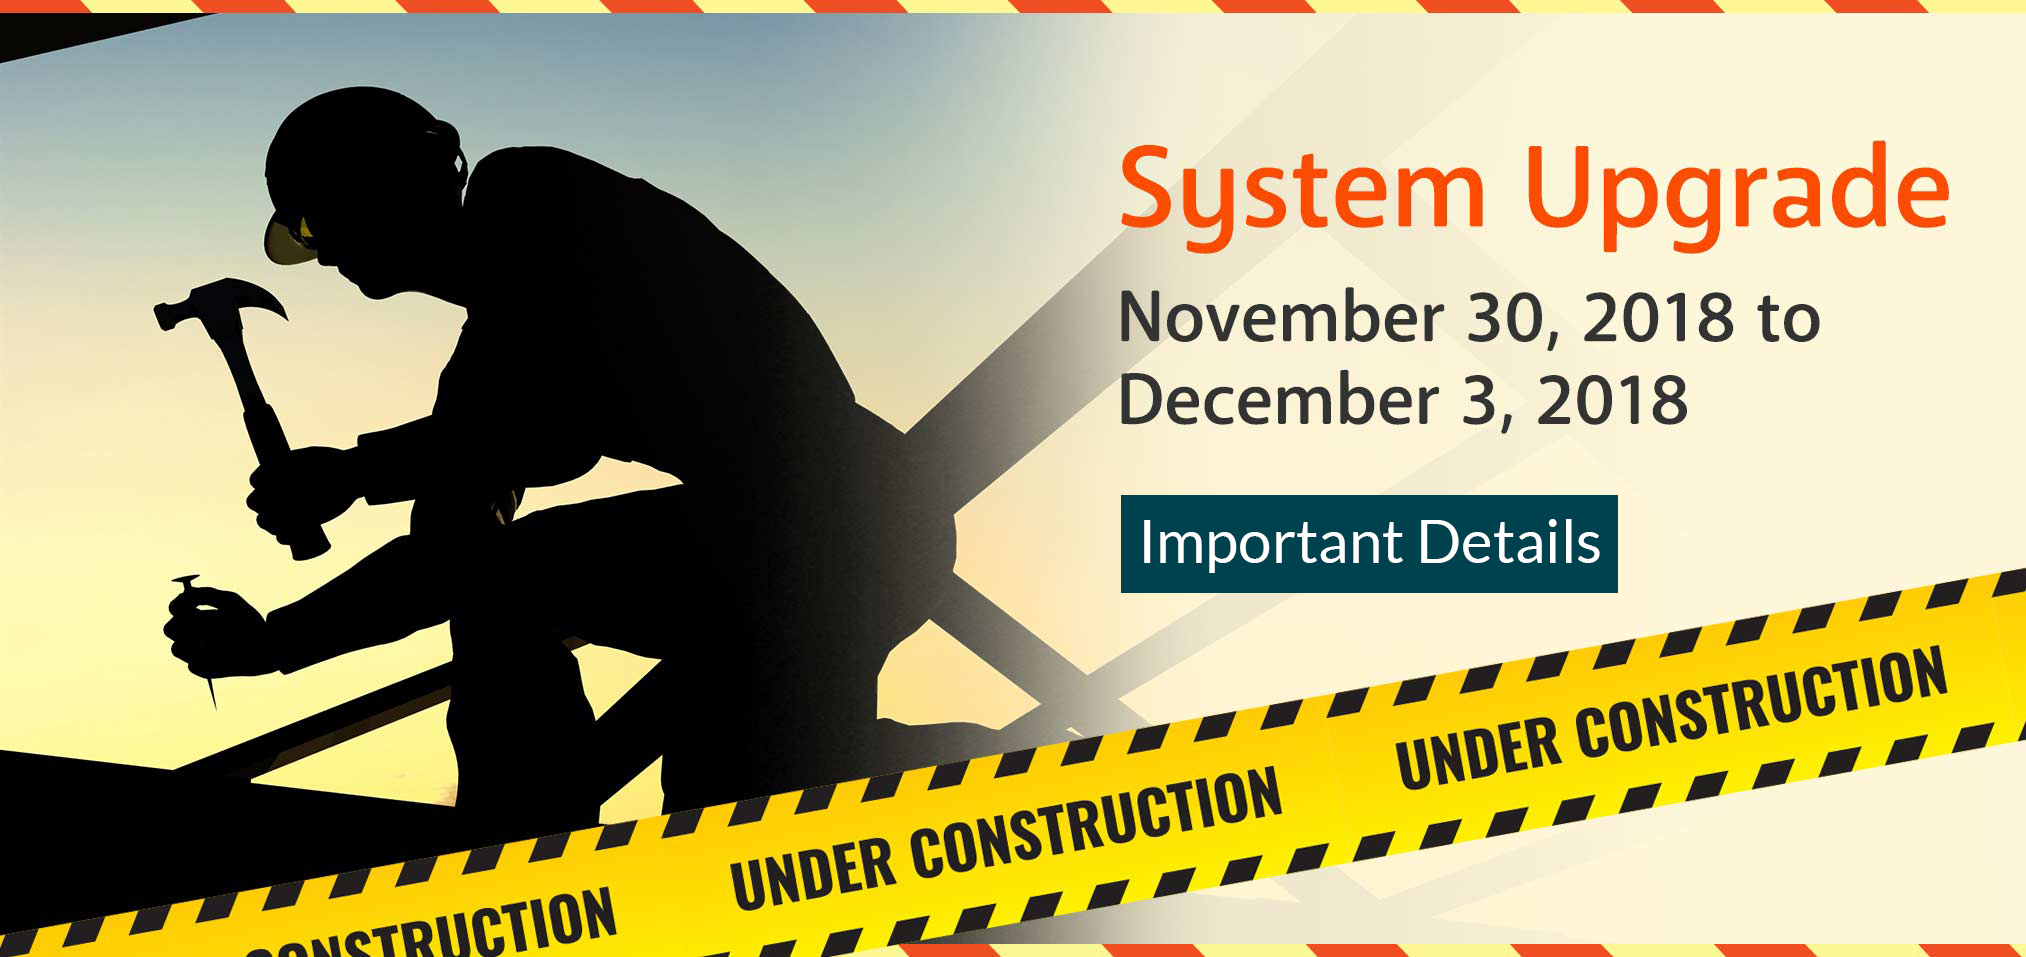 System Upgrade. November 30, 2018 to December 3, 2018. Important details.